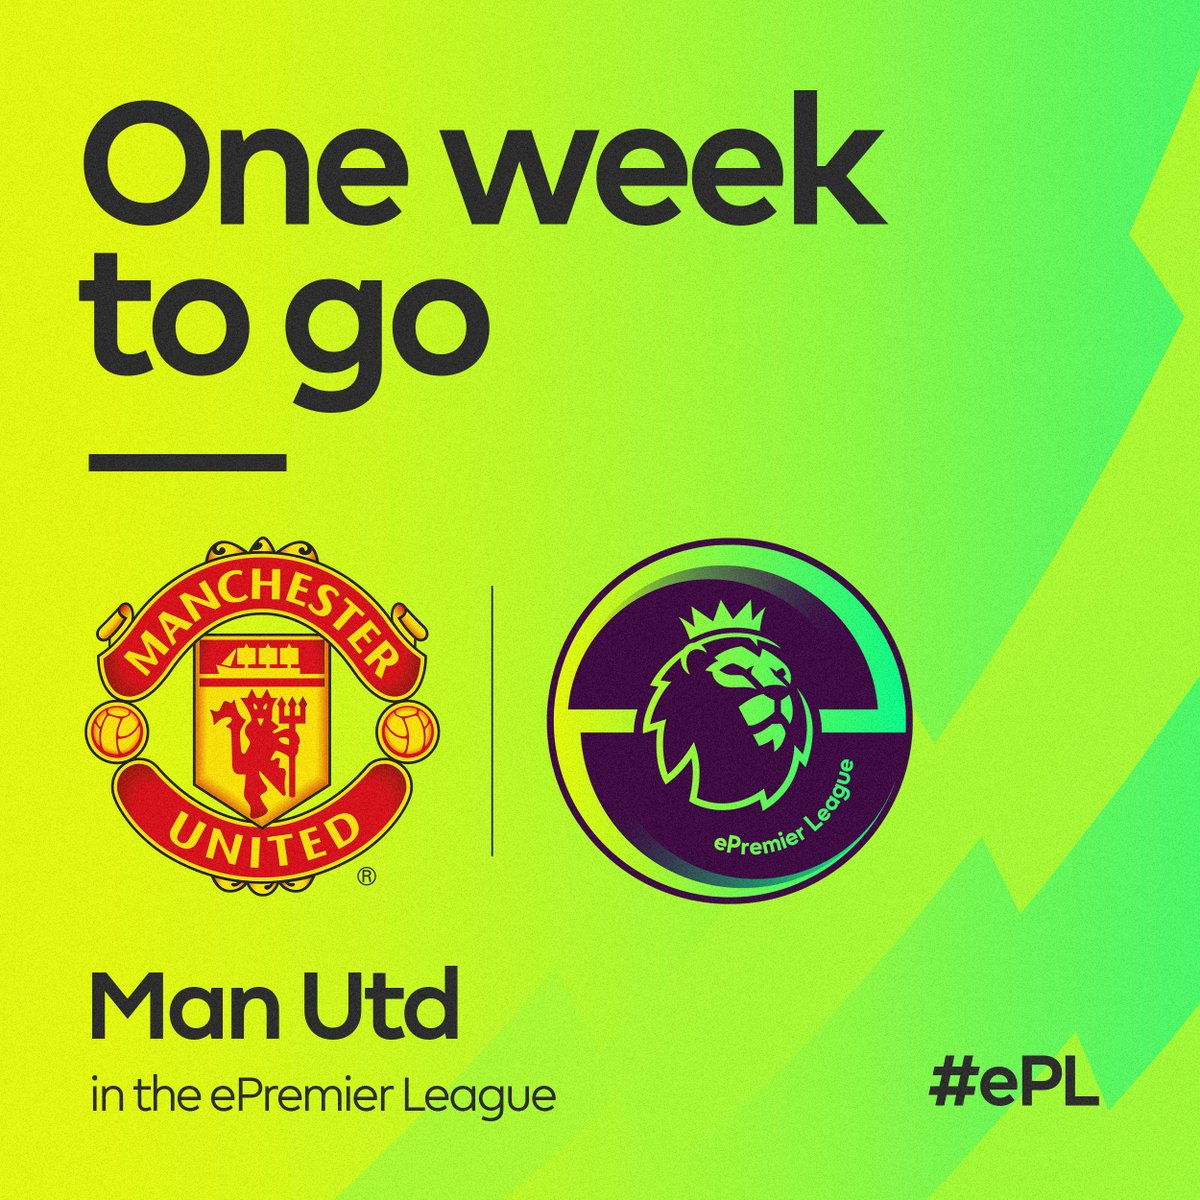 Registered for the #ePL? Only one week left to qualify for the #MUFC play-off at Old Trafford. 📅 Schedule your matches at http://e.premierleague.com.